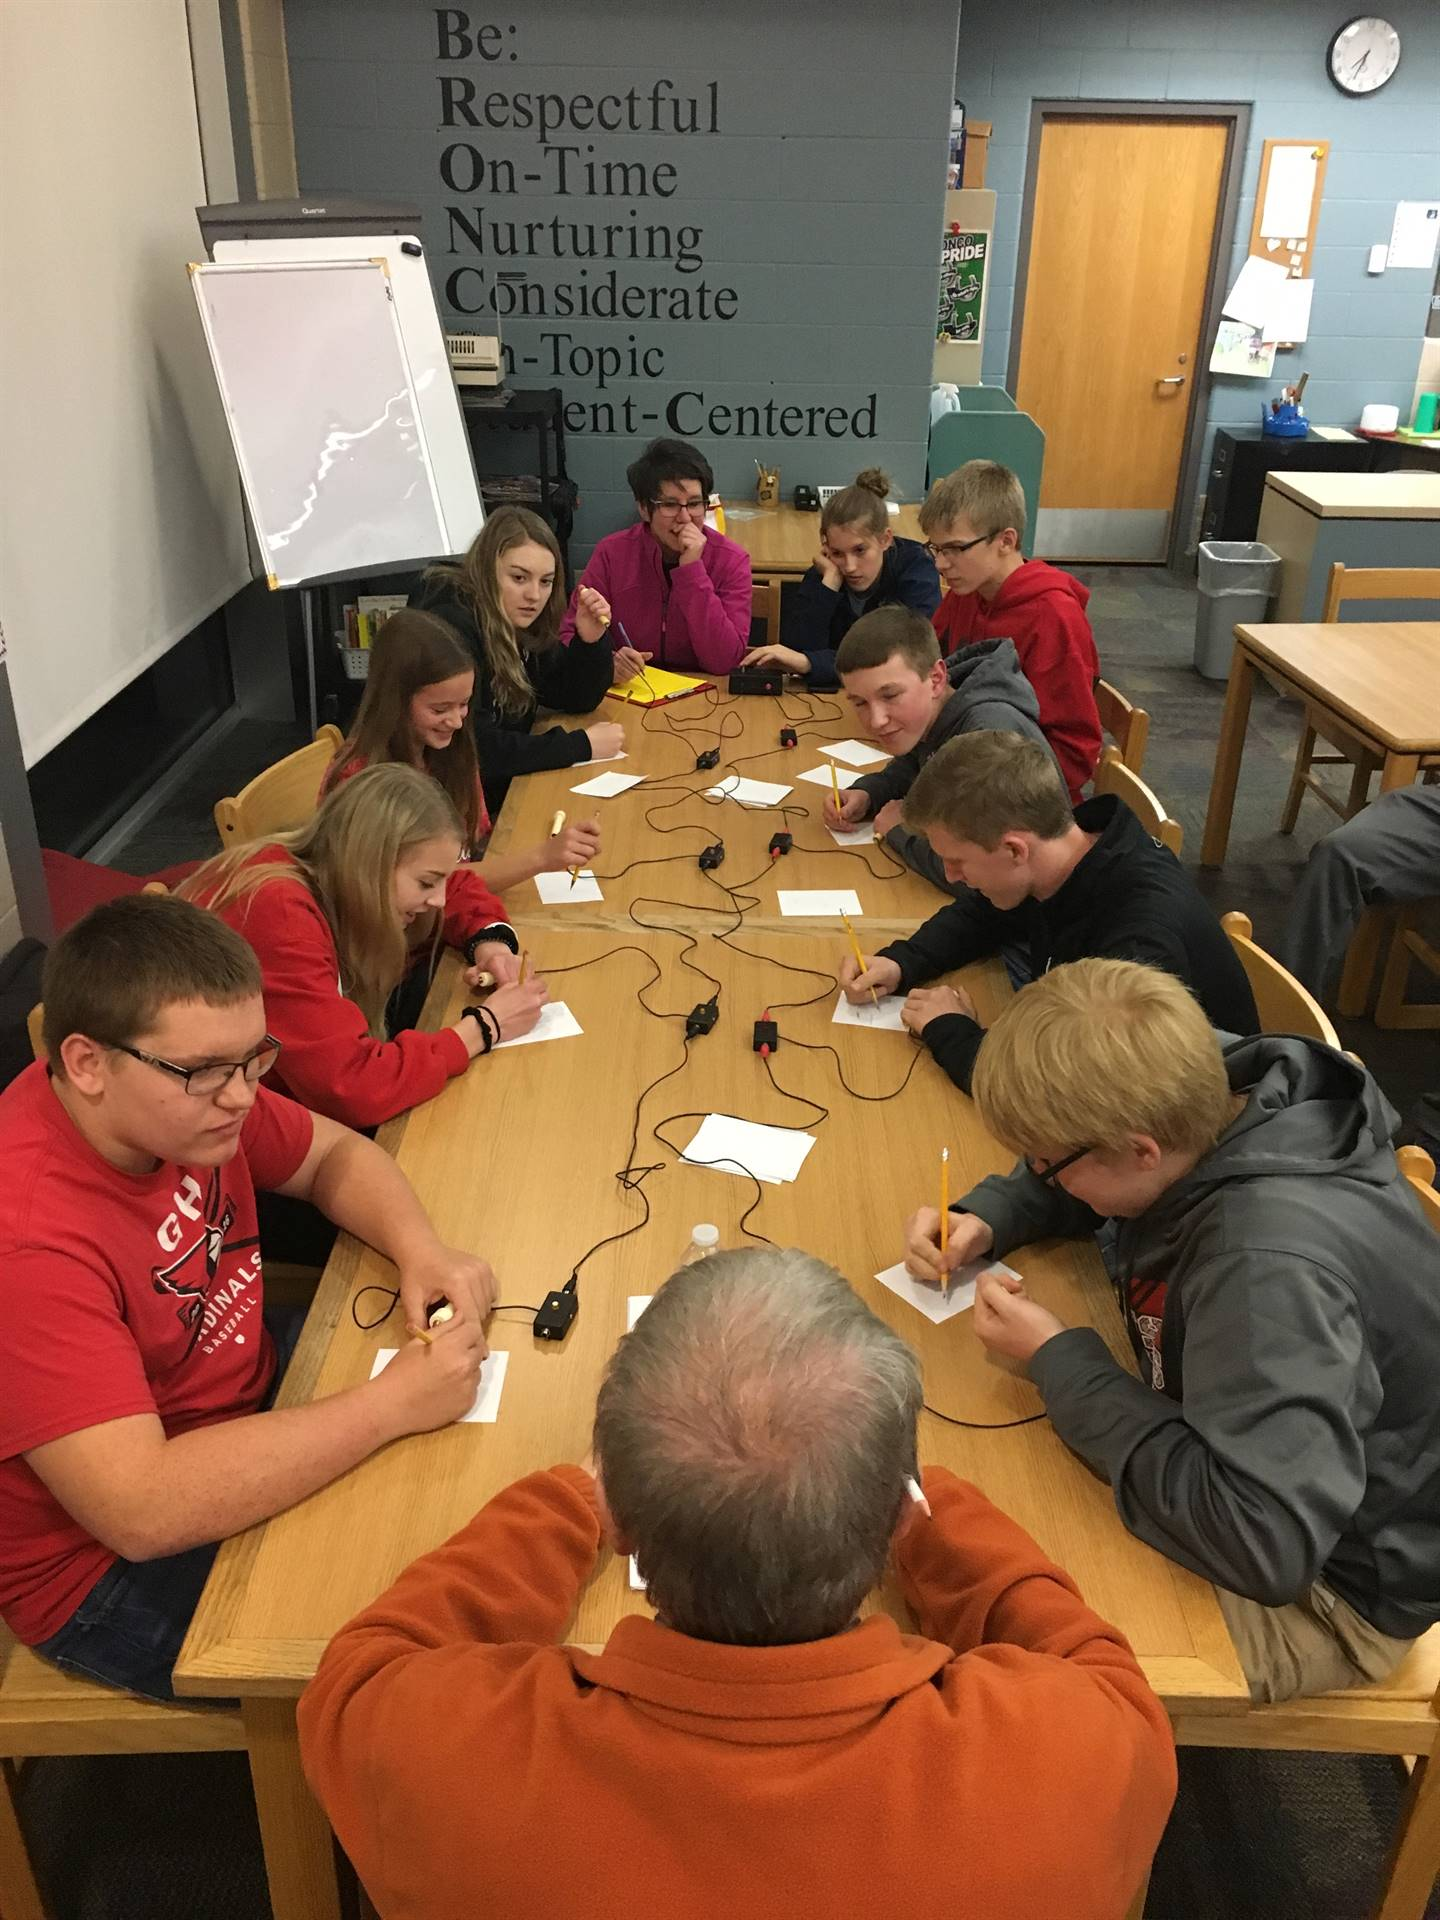 students sitting at a table with buzzers in hand for a quiz bowl